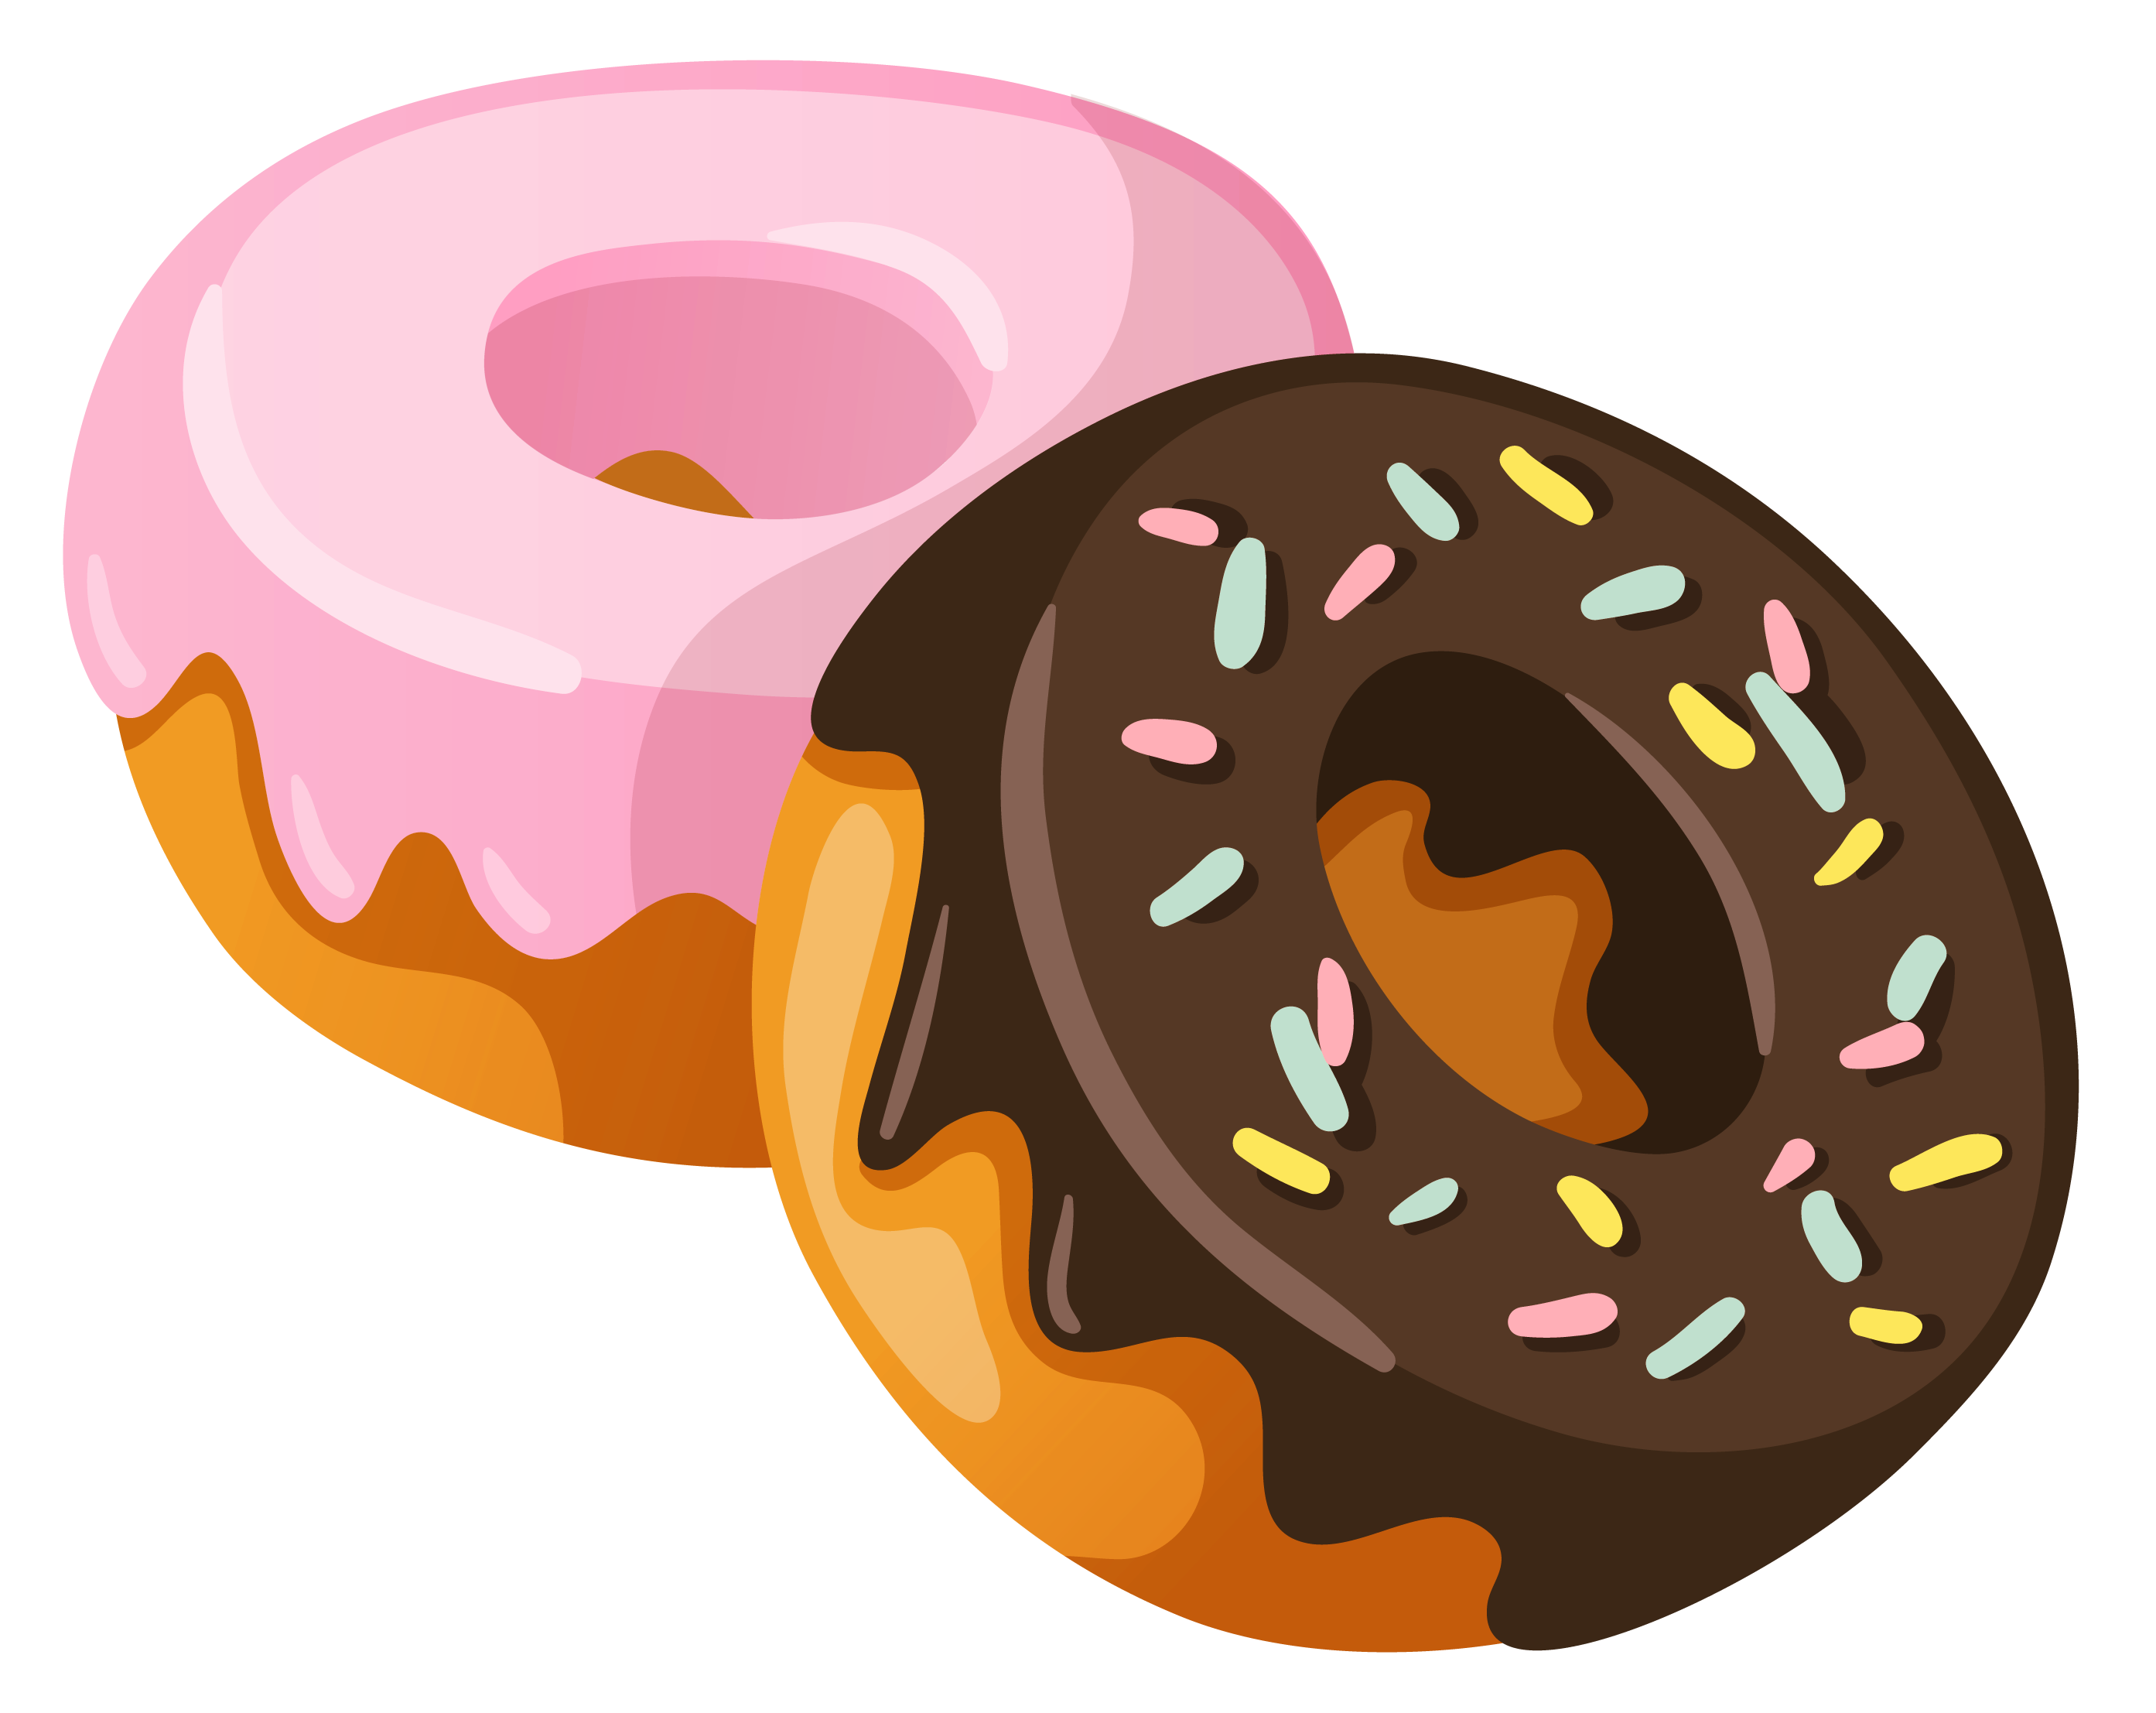 Sweets clipart. Donuts png picture gallery